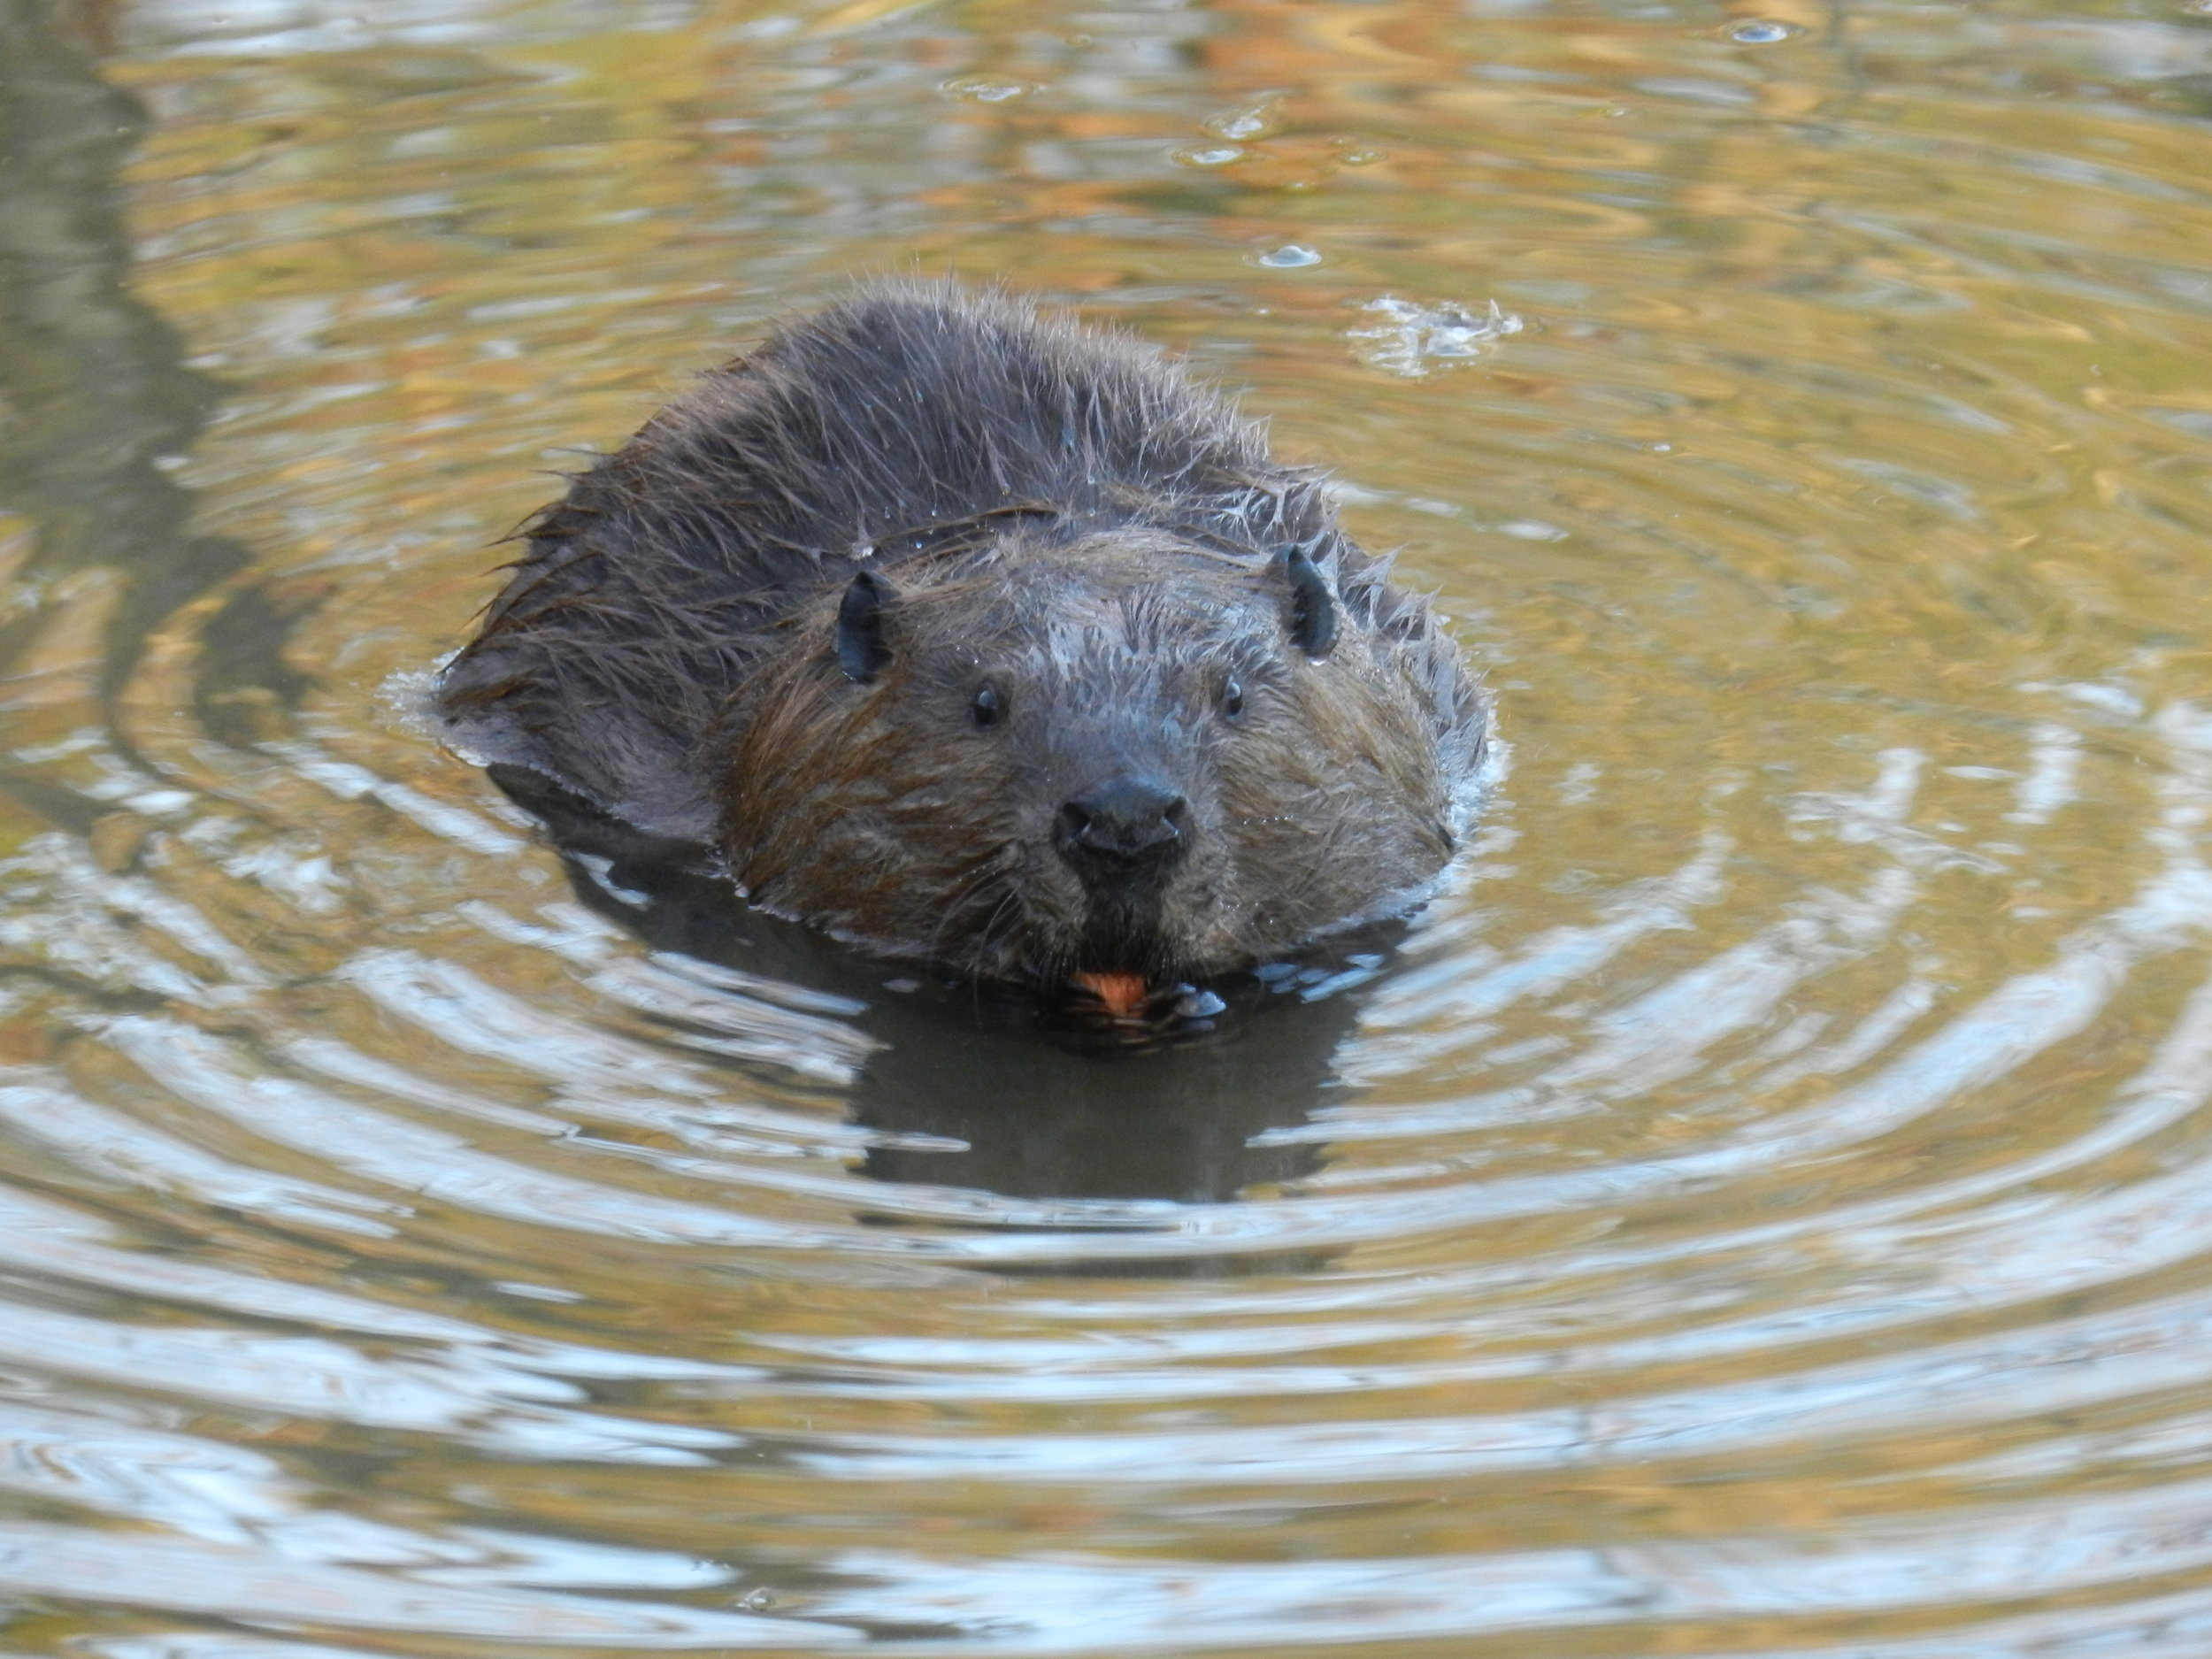 Beavers and Wetlands  Beavers are a keystone species, and essential to habitat restoration at the Preserve. Walk over beaver dams and look for signs of beavers, as we examine how they benefit our urban ecosystem.